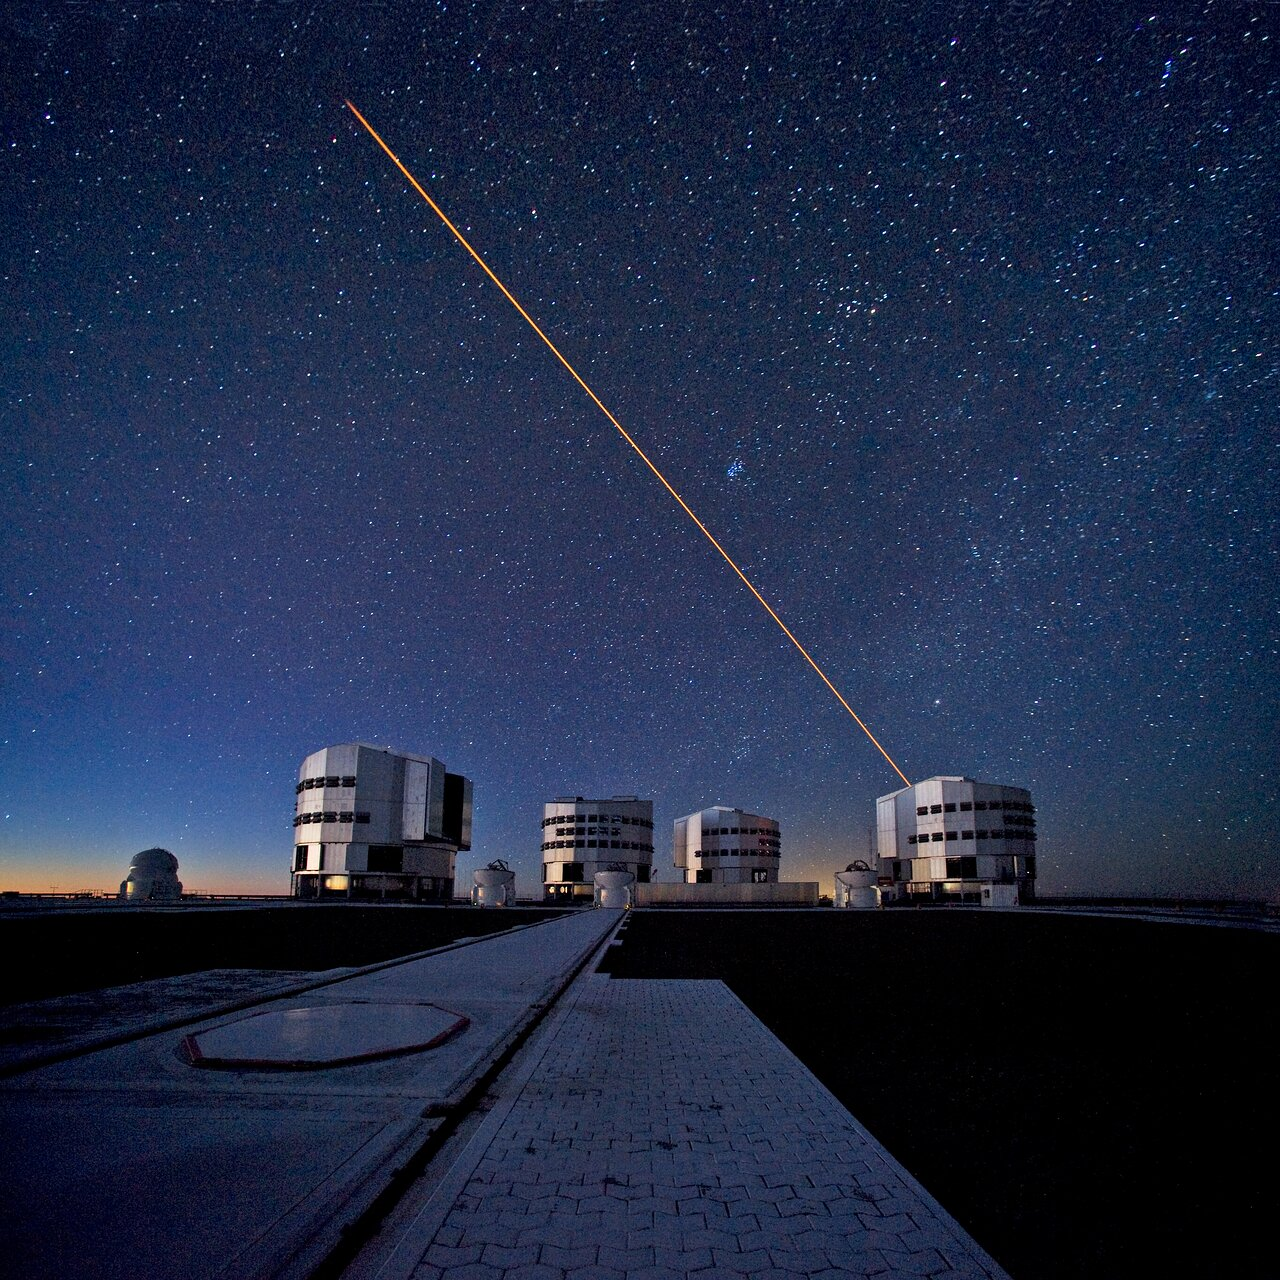 Mounted image 126: The VLT in Action